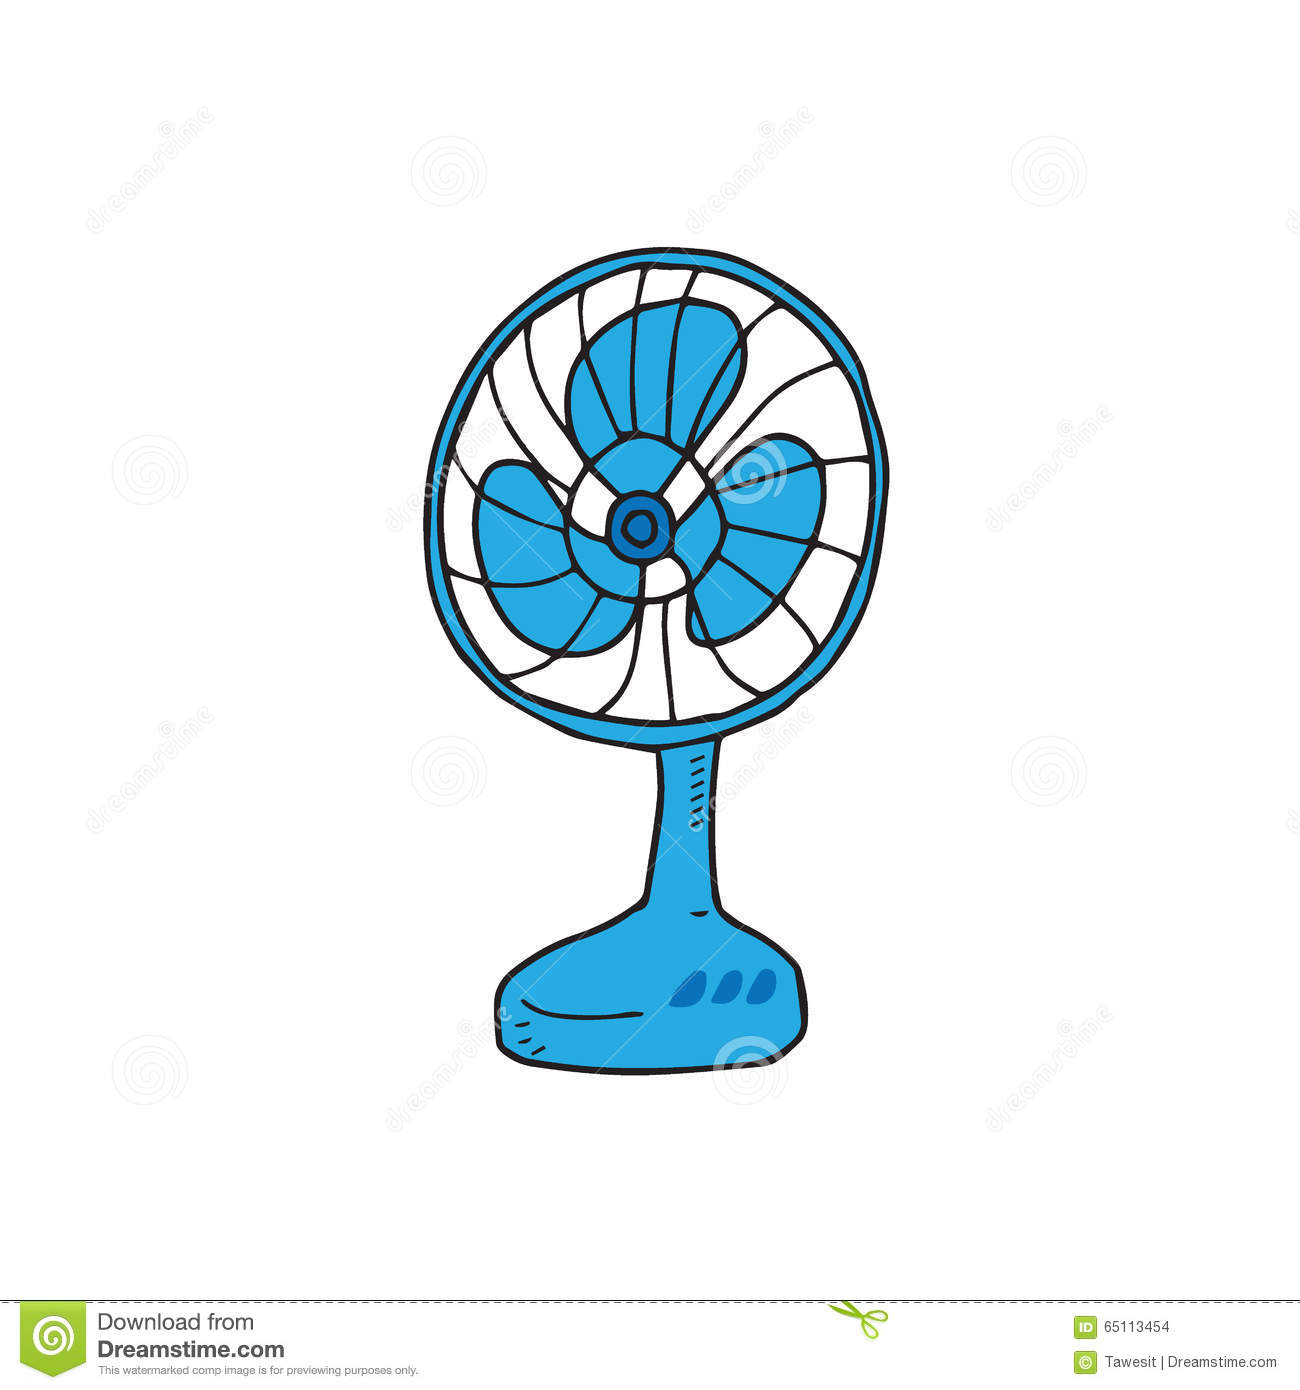 Electronic Fan Royalty Free Stock Photography